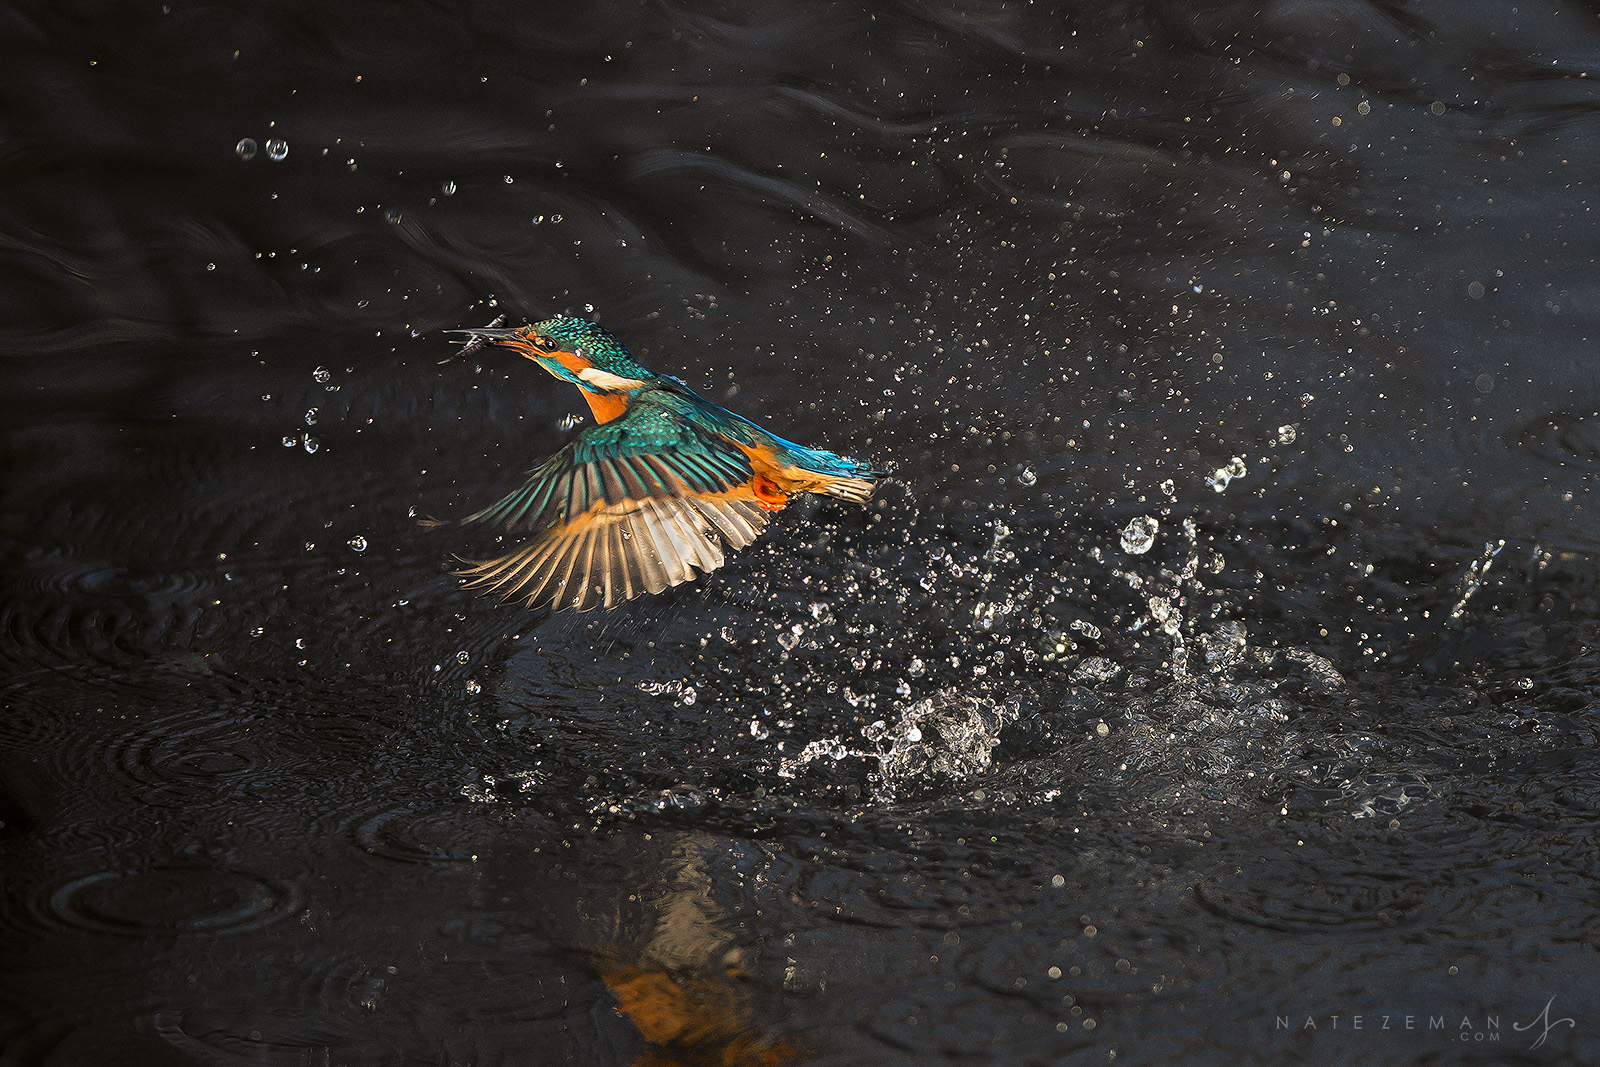 kingfisher, fishing, eurasian, common, fish, catching, catch, water, splash, river ver, united kingdom, photo